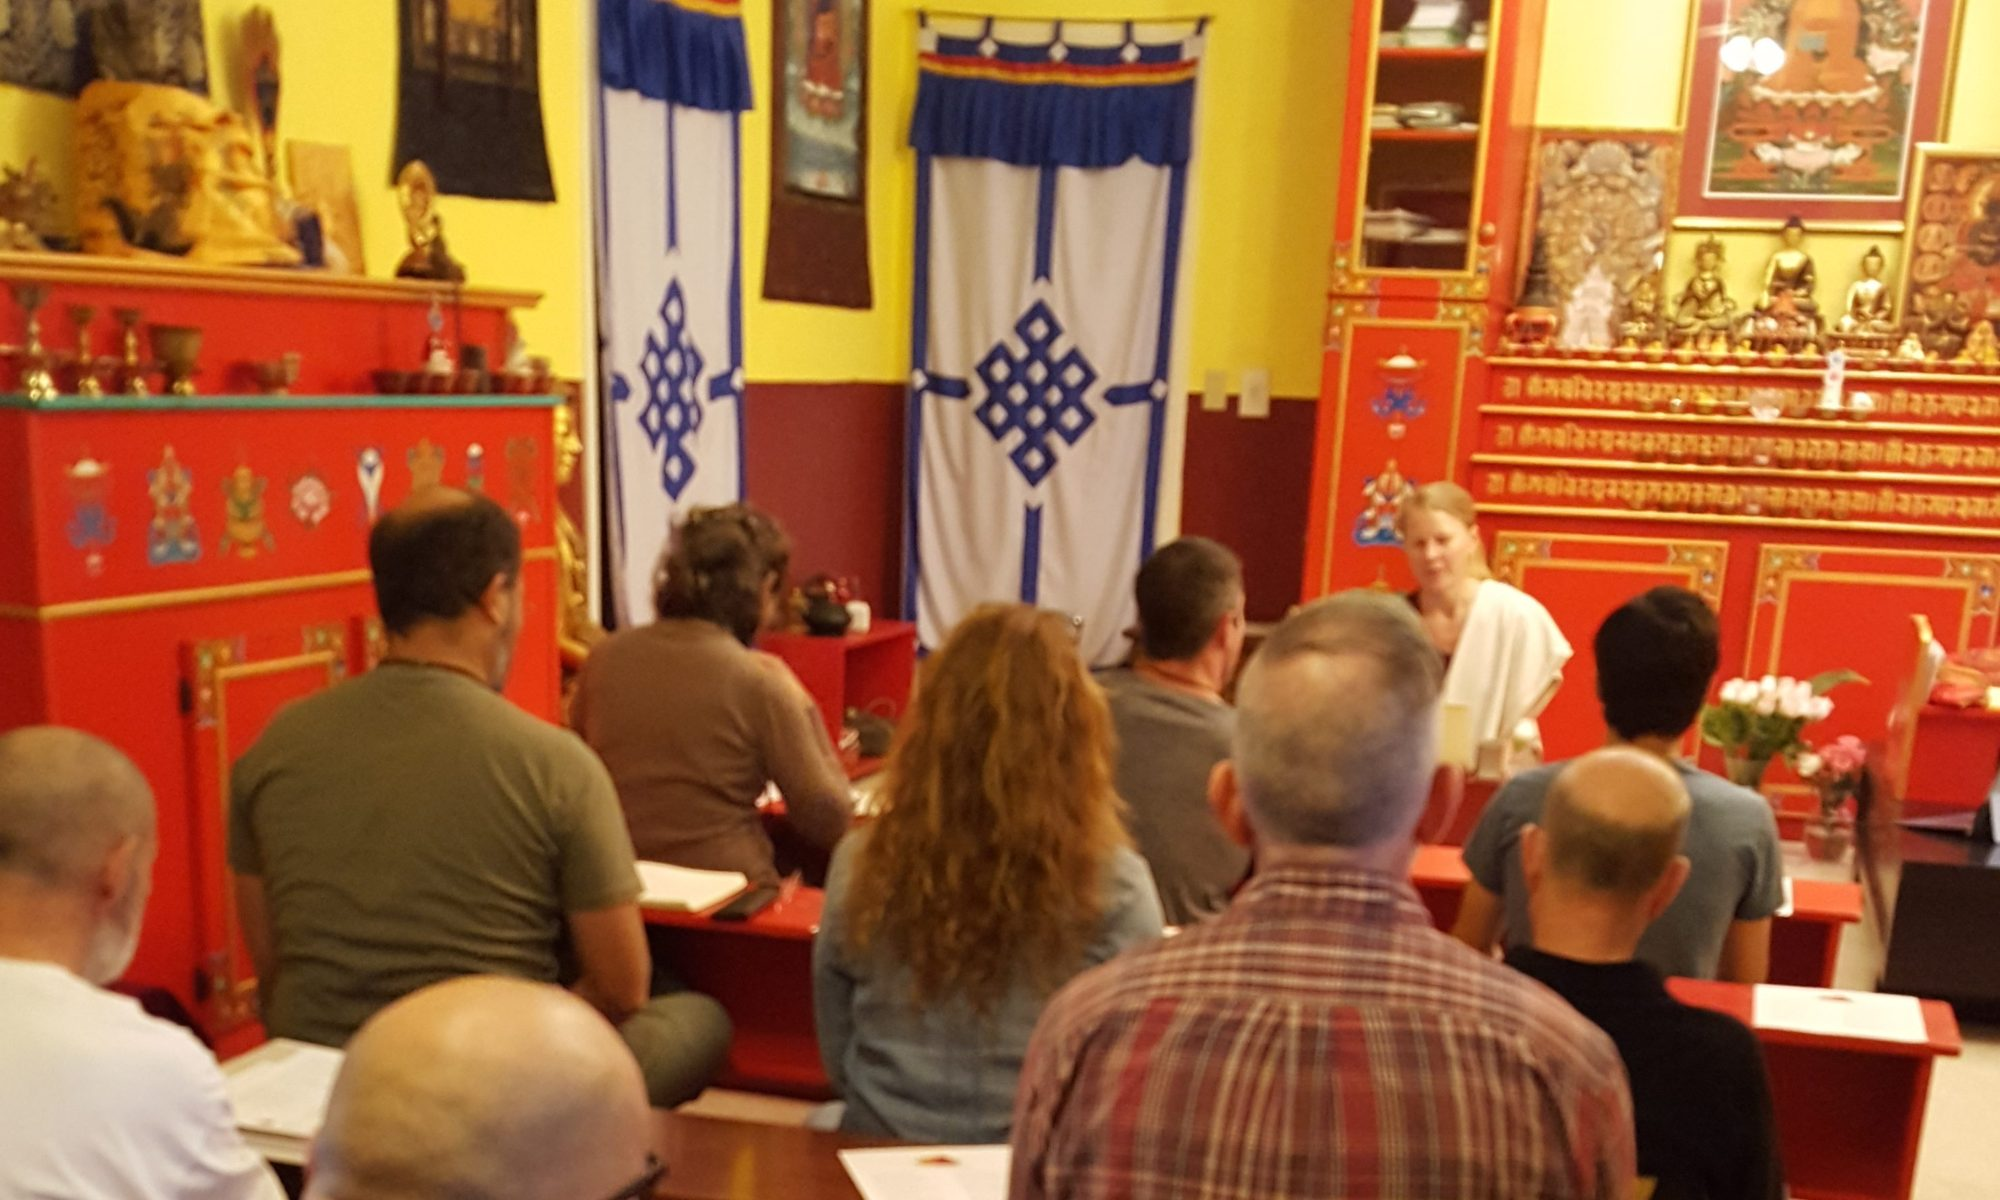 teachings @ Open Awareness Buddhist Center